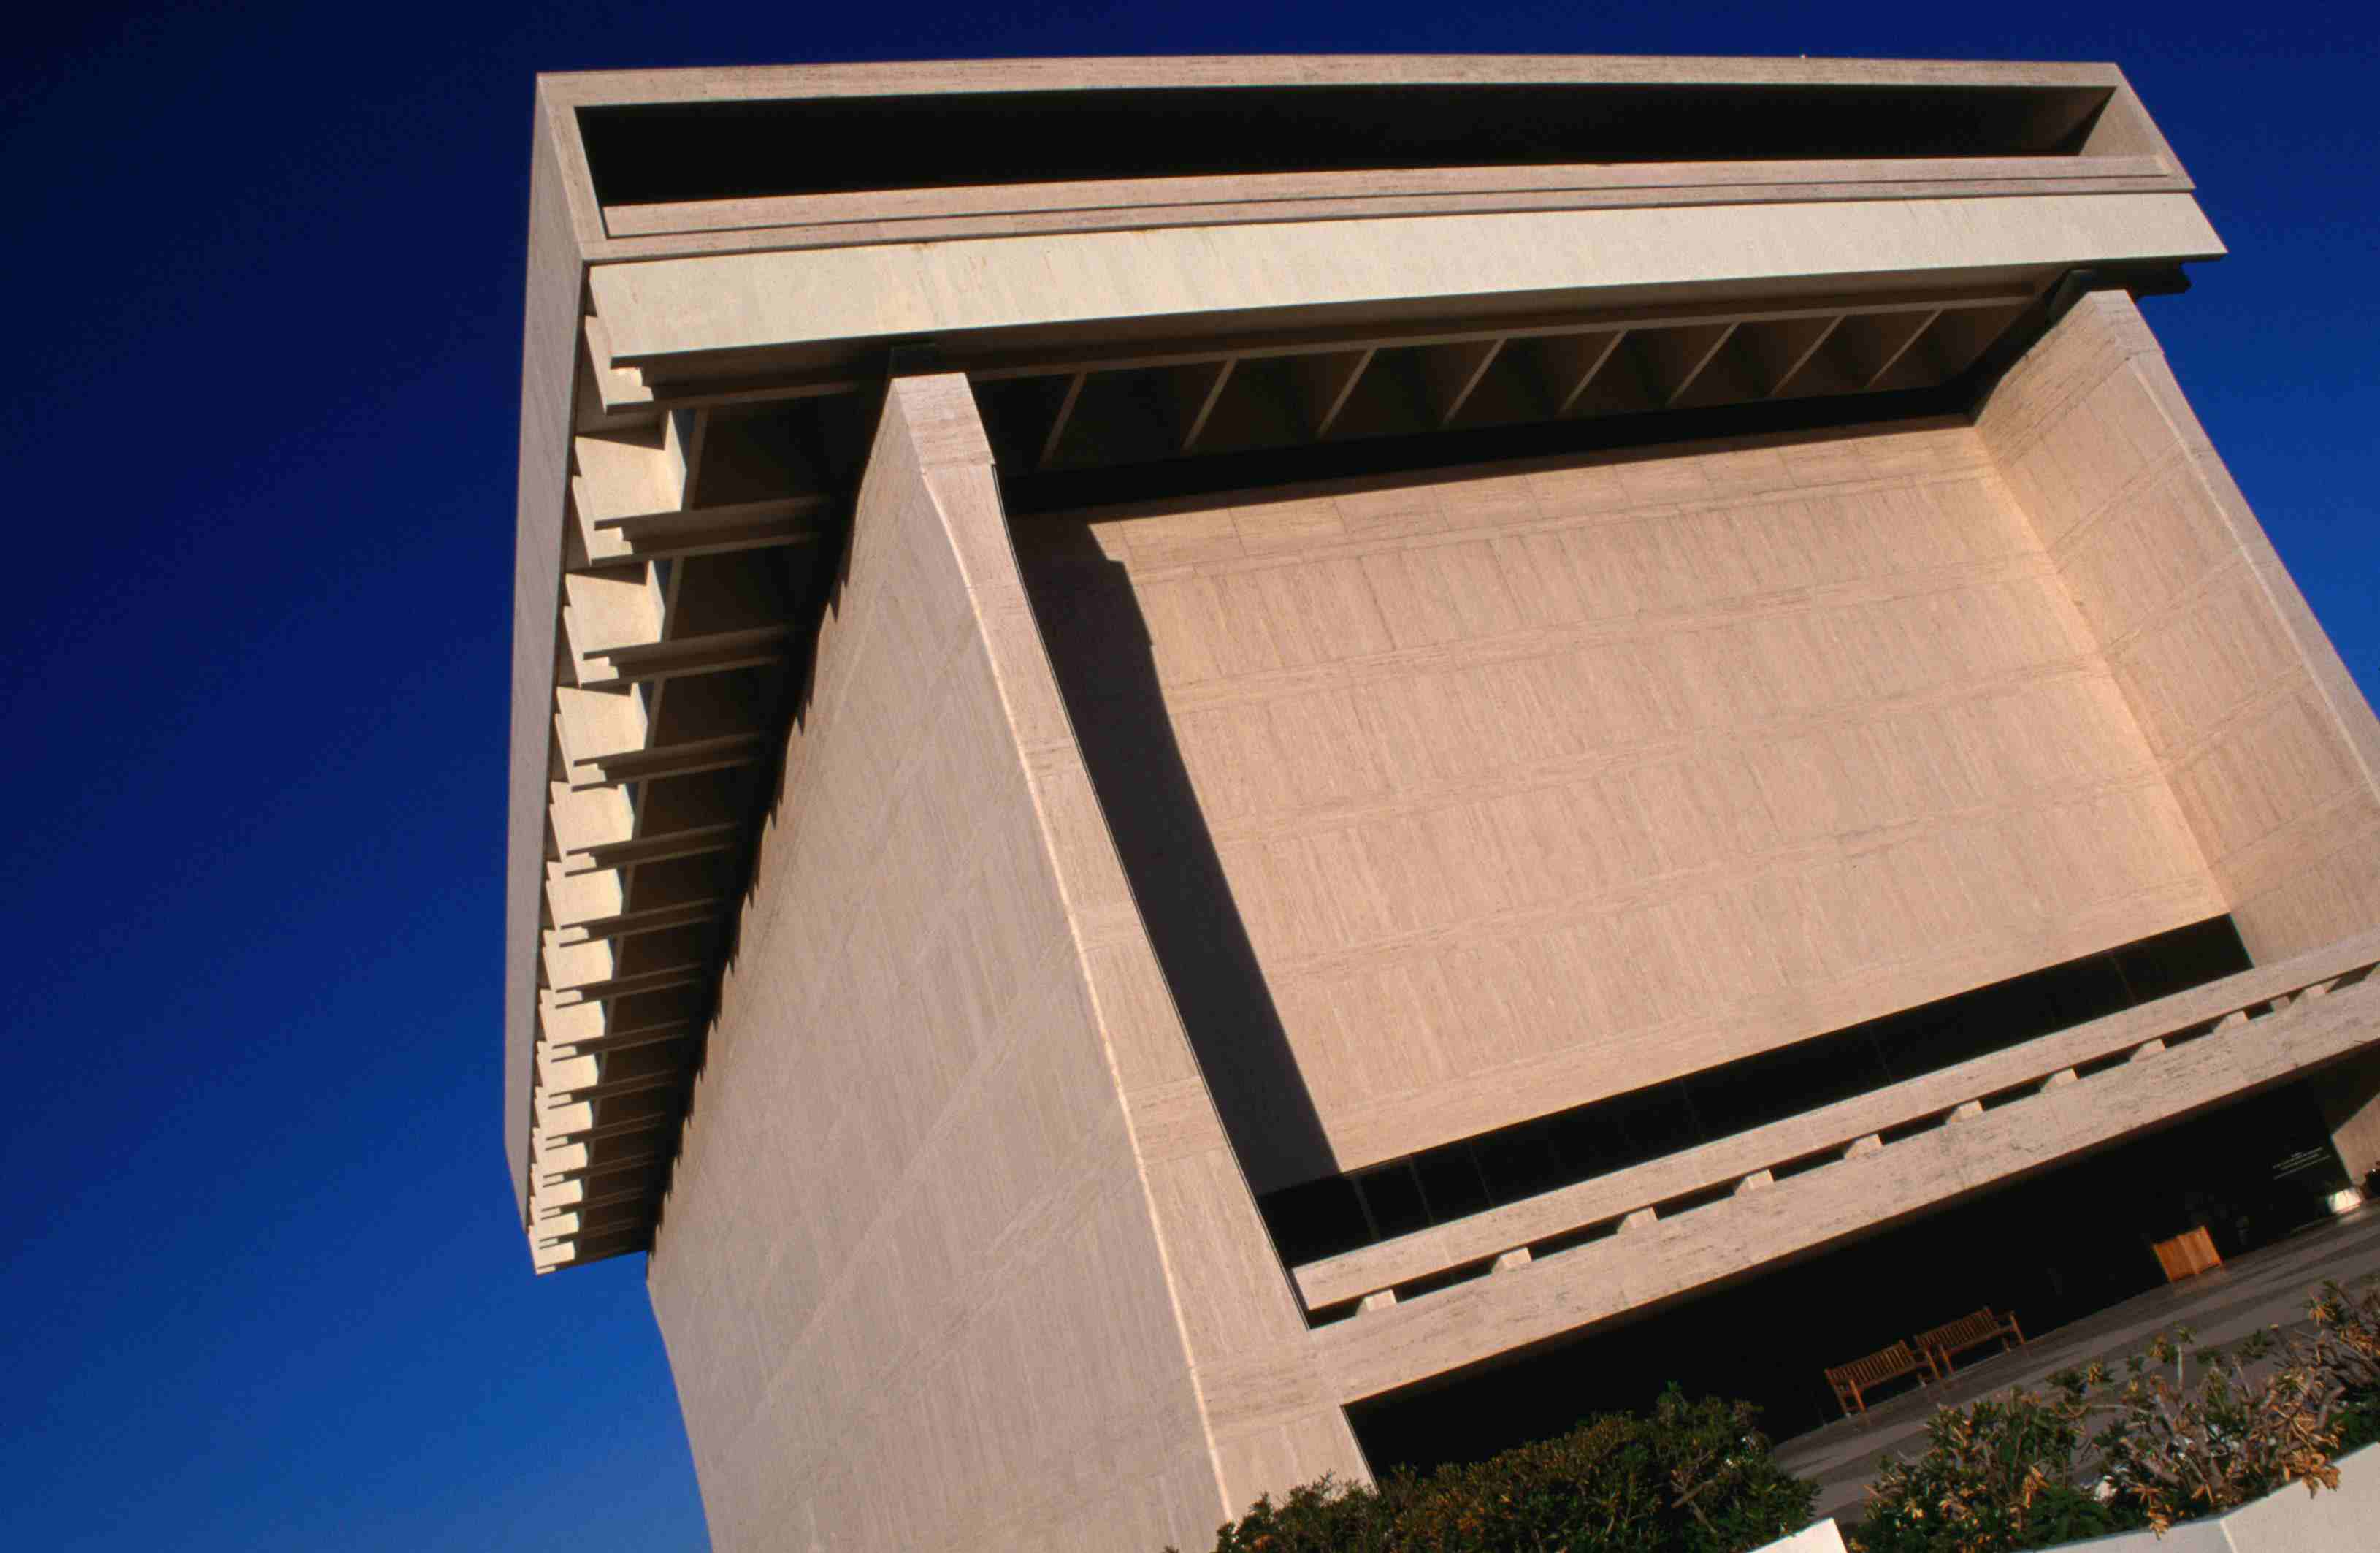 Detail of the LBJ Library in Austin, Texas